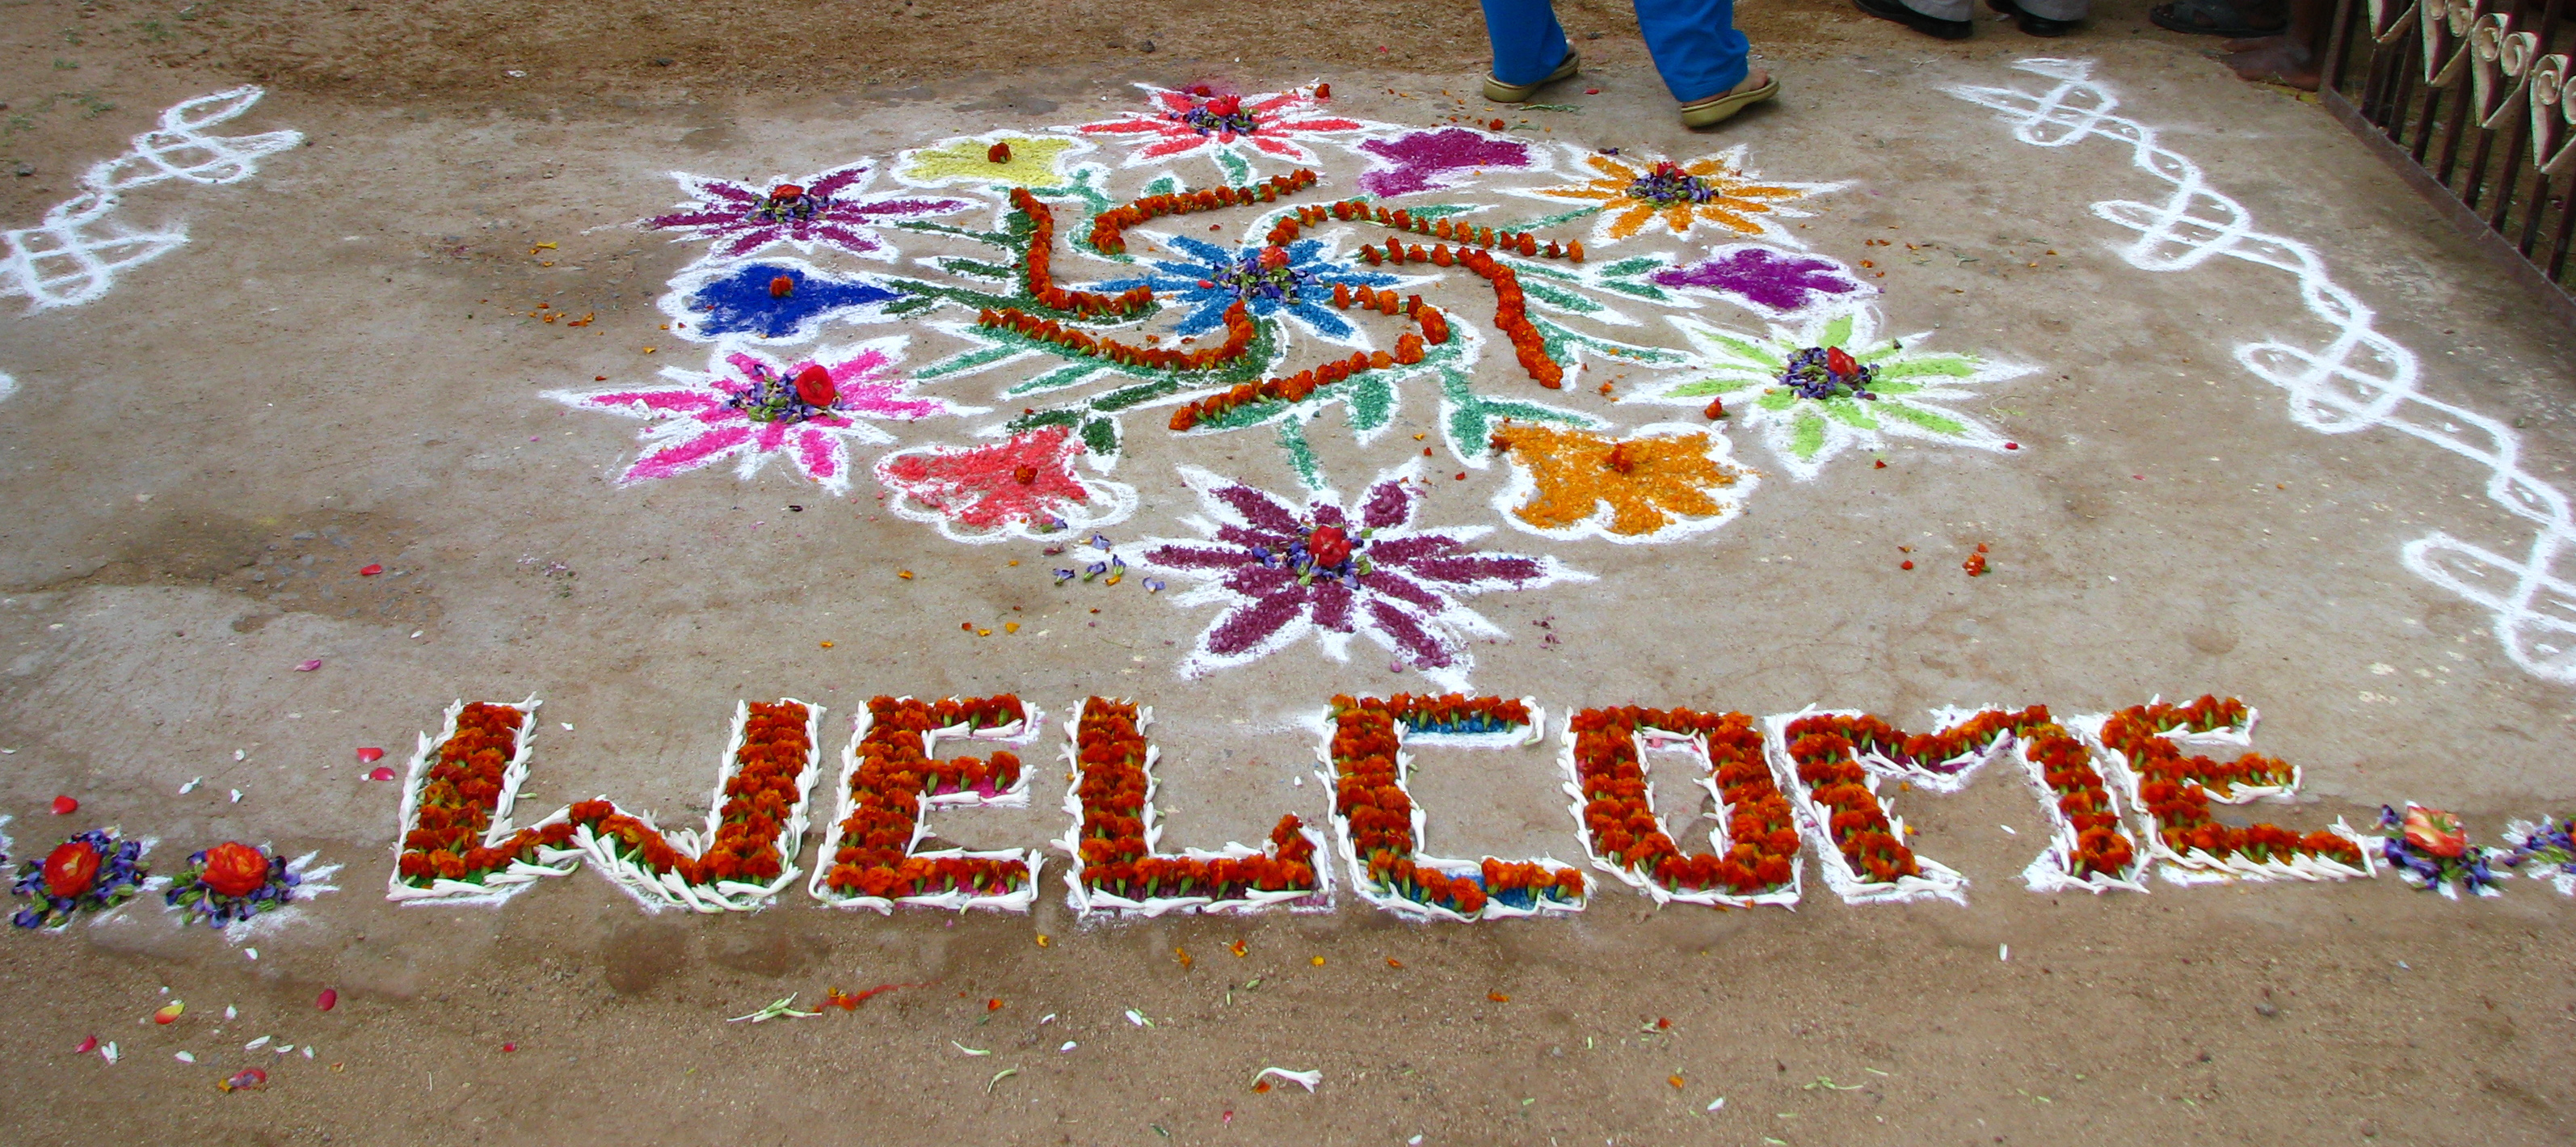 File:India - Sights & Culture - Chalk & flower welcome ...